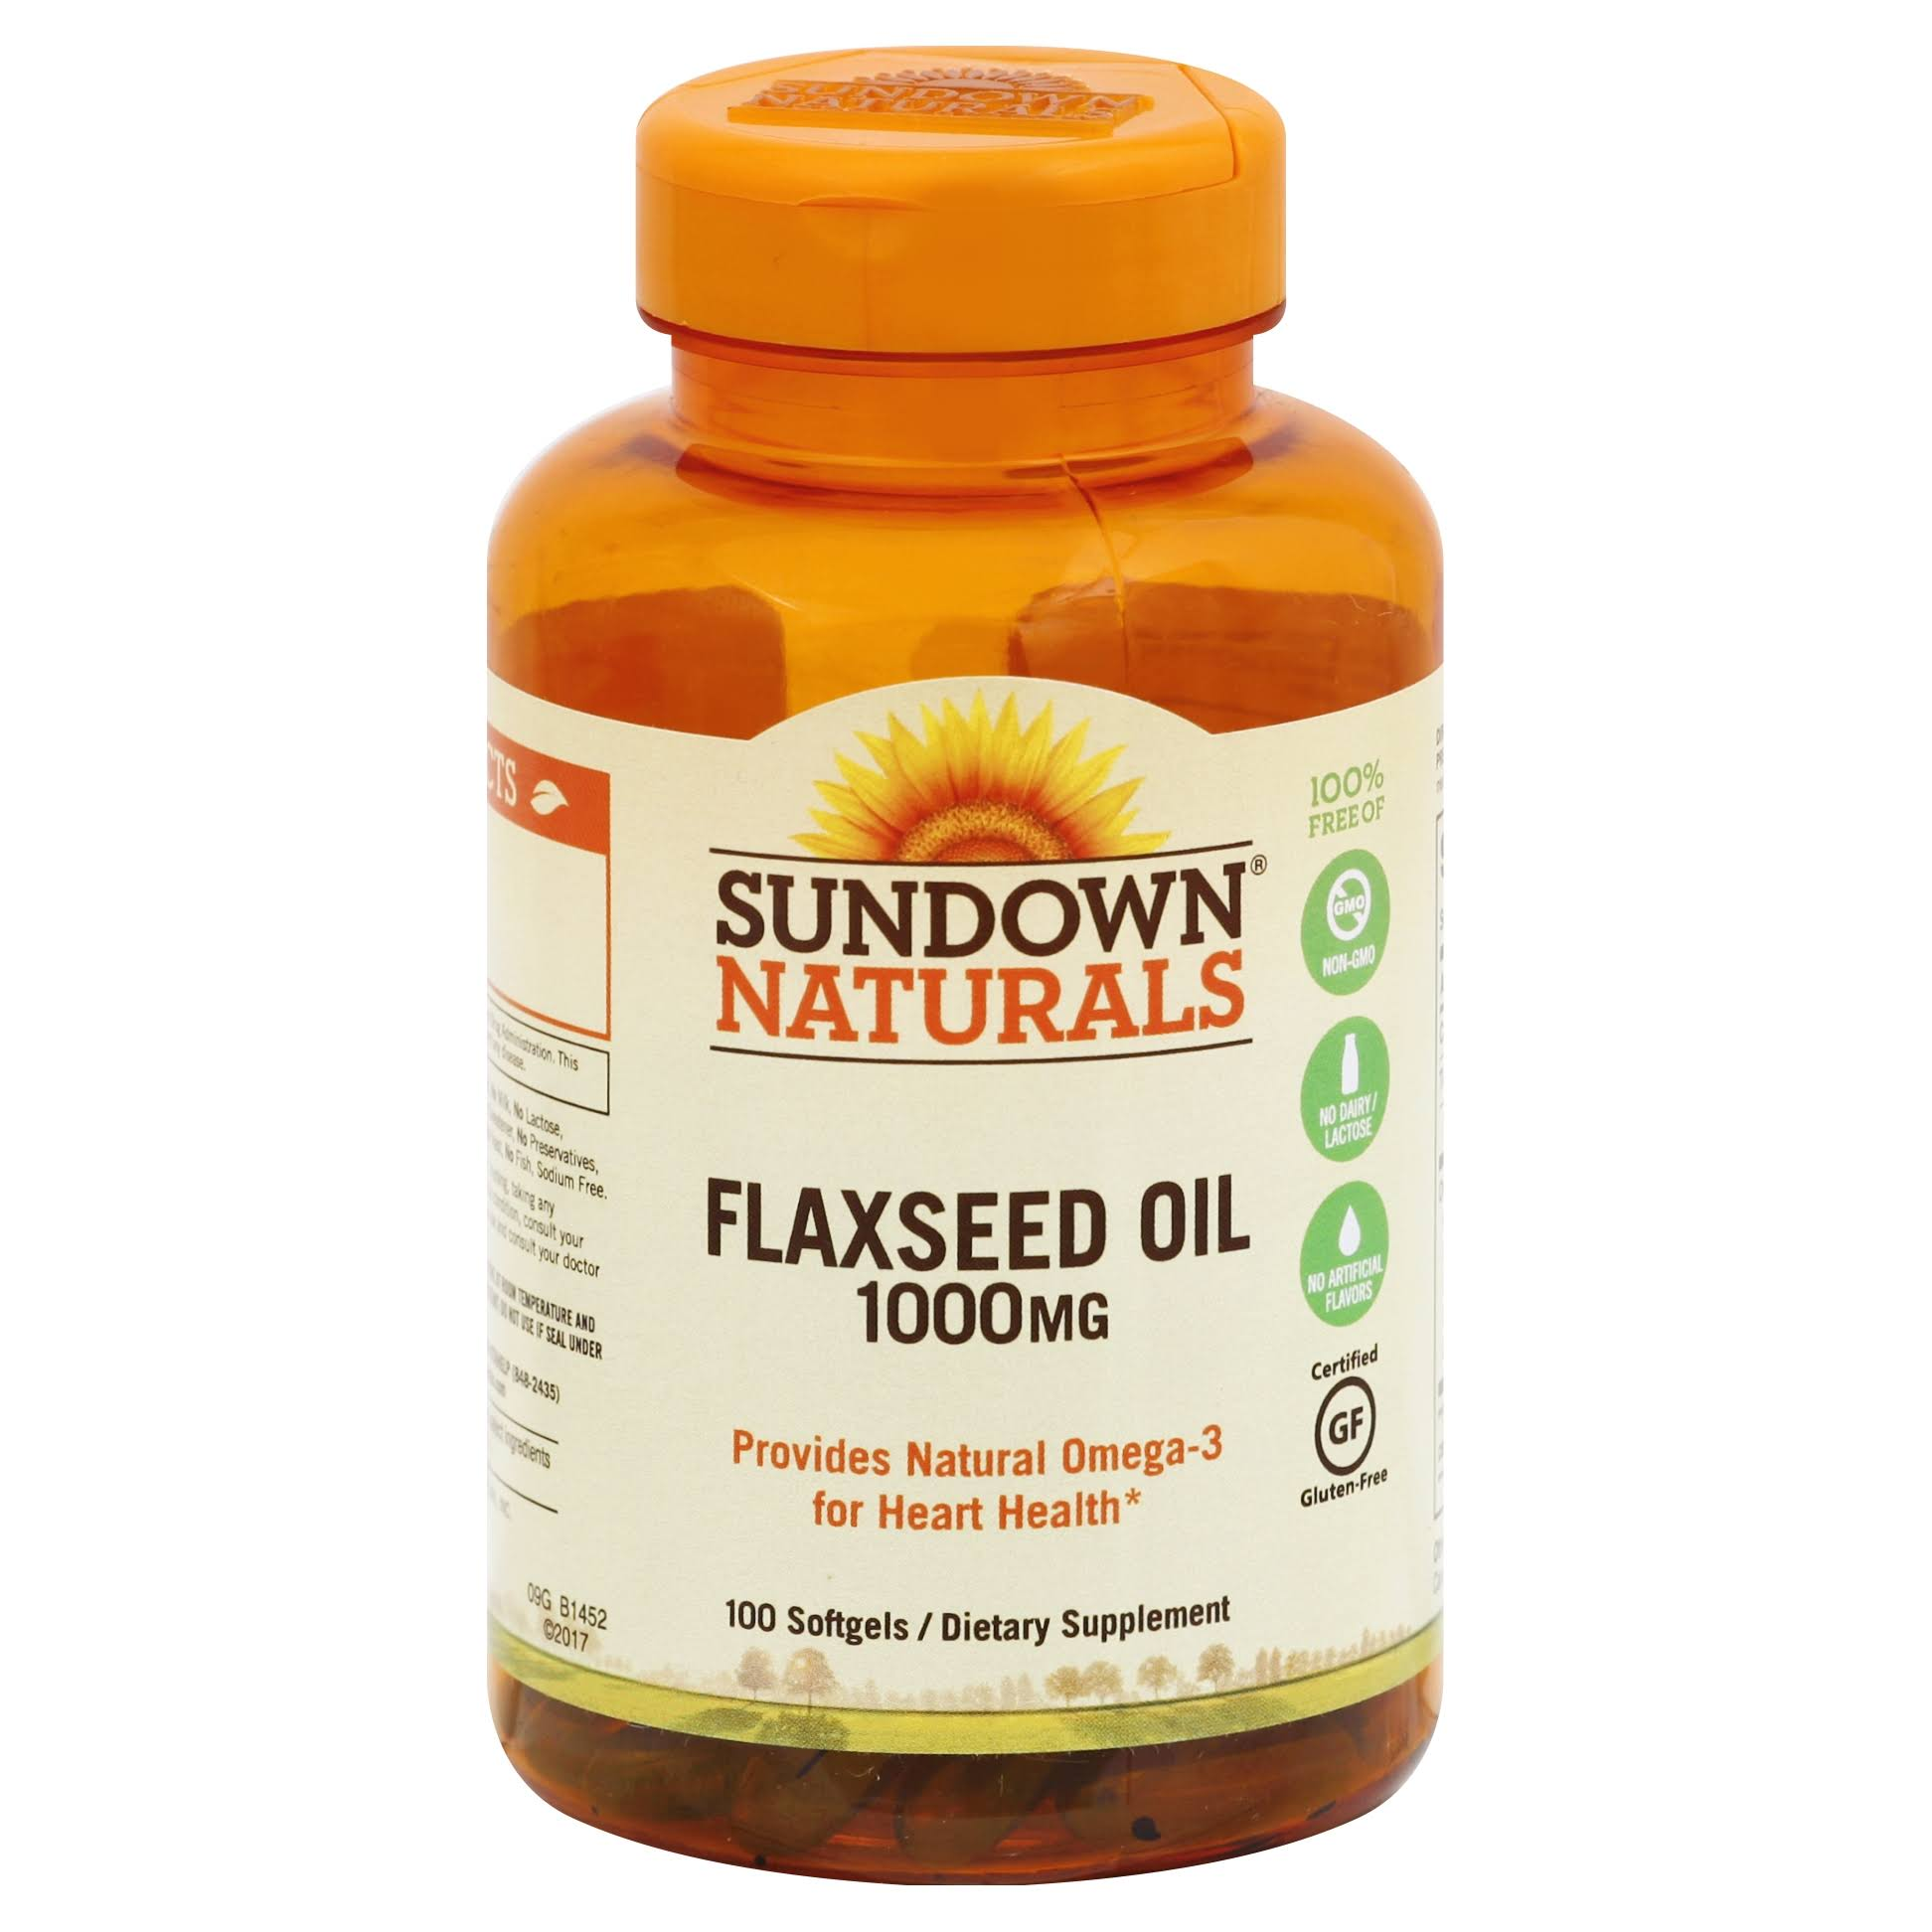 Sundown Naturals Flaxseed Oil Supplement - 1000mg, 100 Count